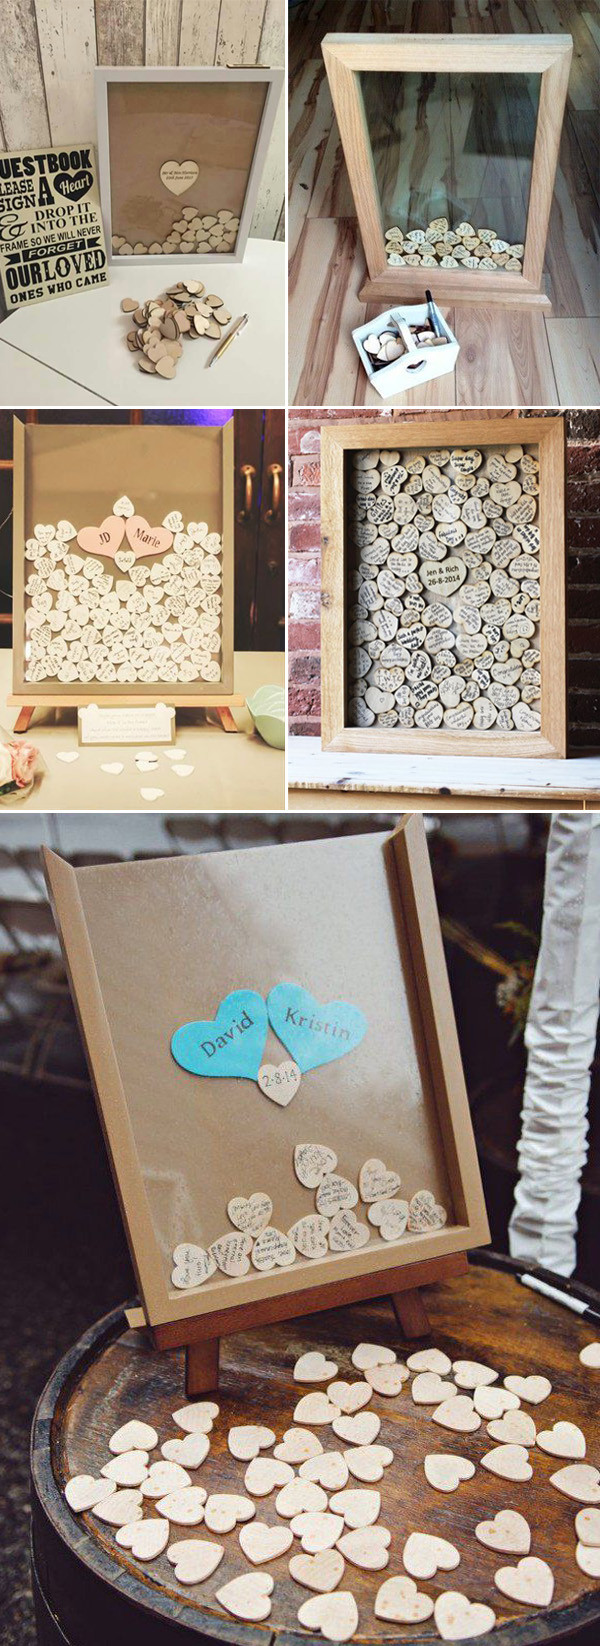 Best ideas about DIY Wedding Guest Books . Save or Pin 10 DIY Unique Guest Book Ideas for Weddings Now.